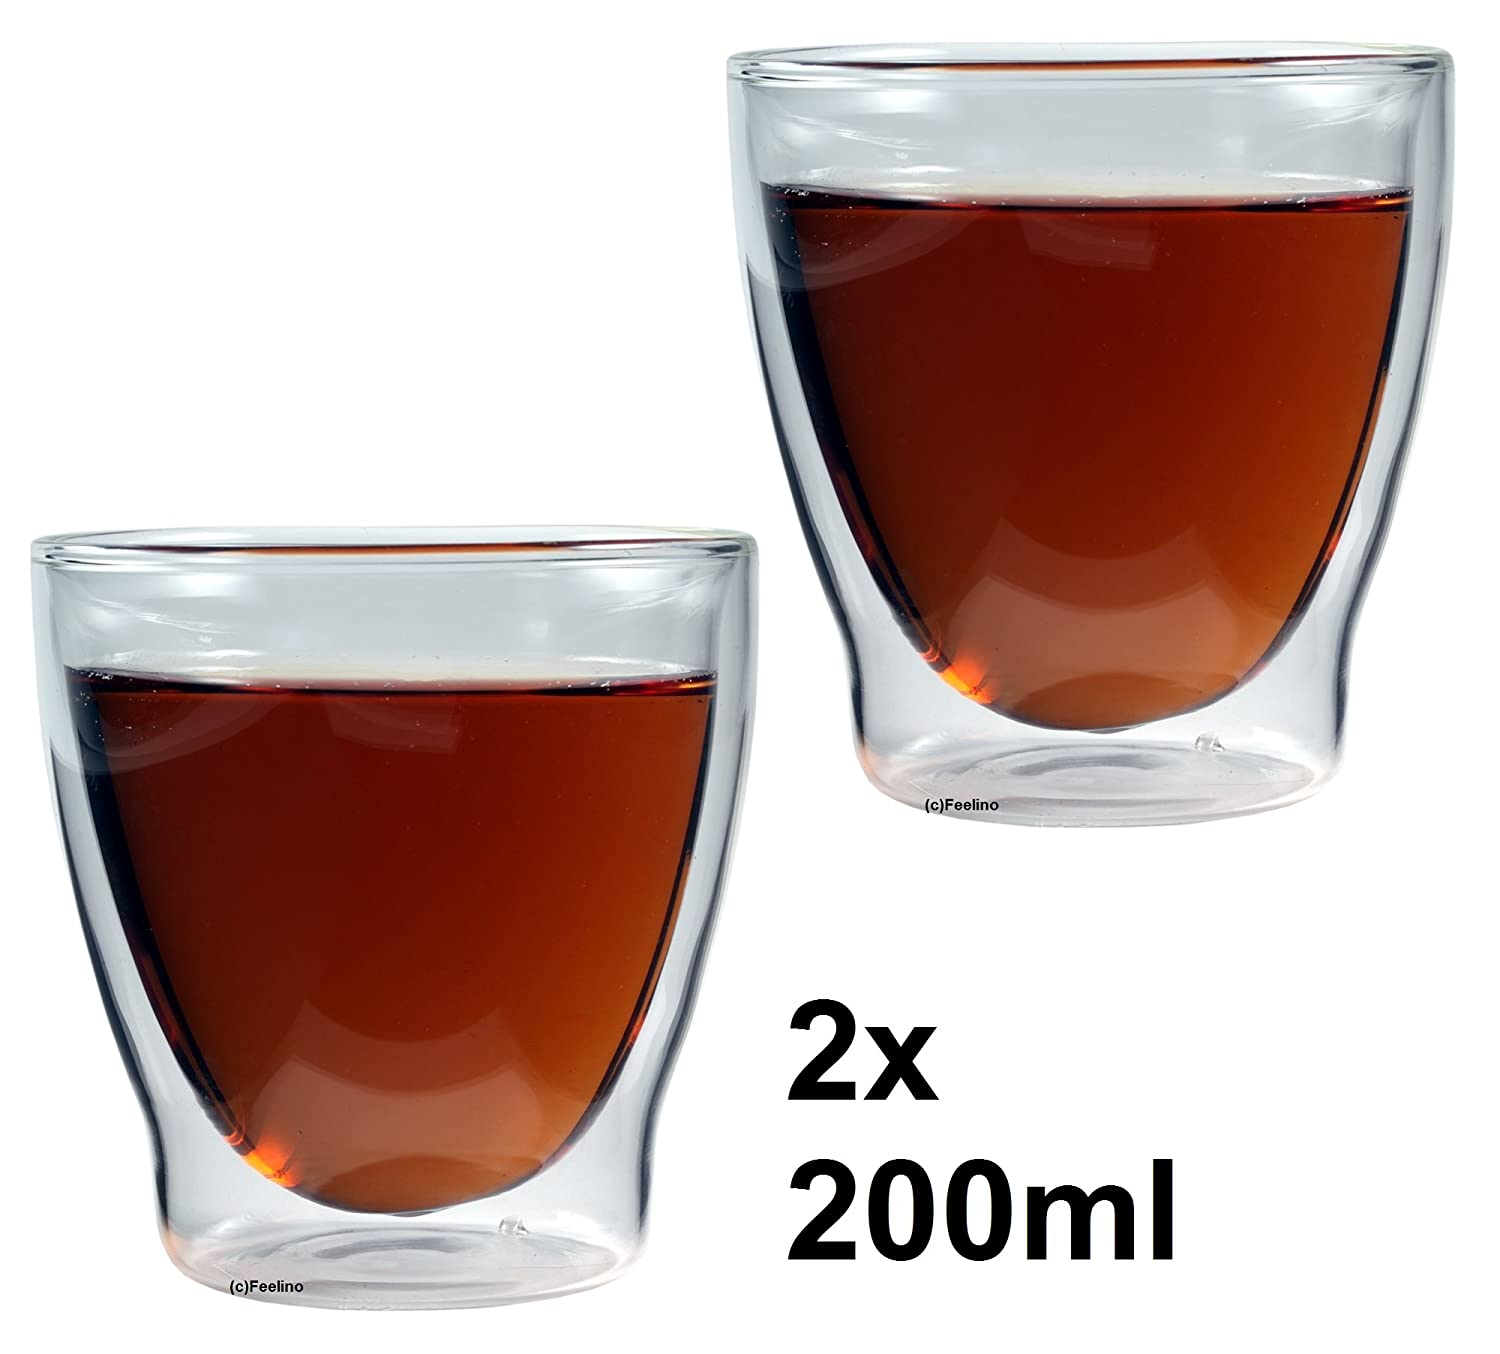 Feelino Rondorello Double-Walled Thermal Tea/Coffee Glasses with Floating Effect 200ml in Gift Box [Set of 2]